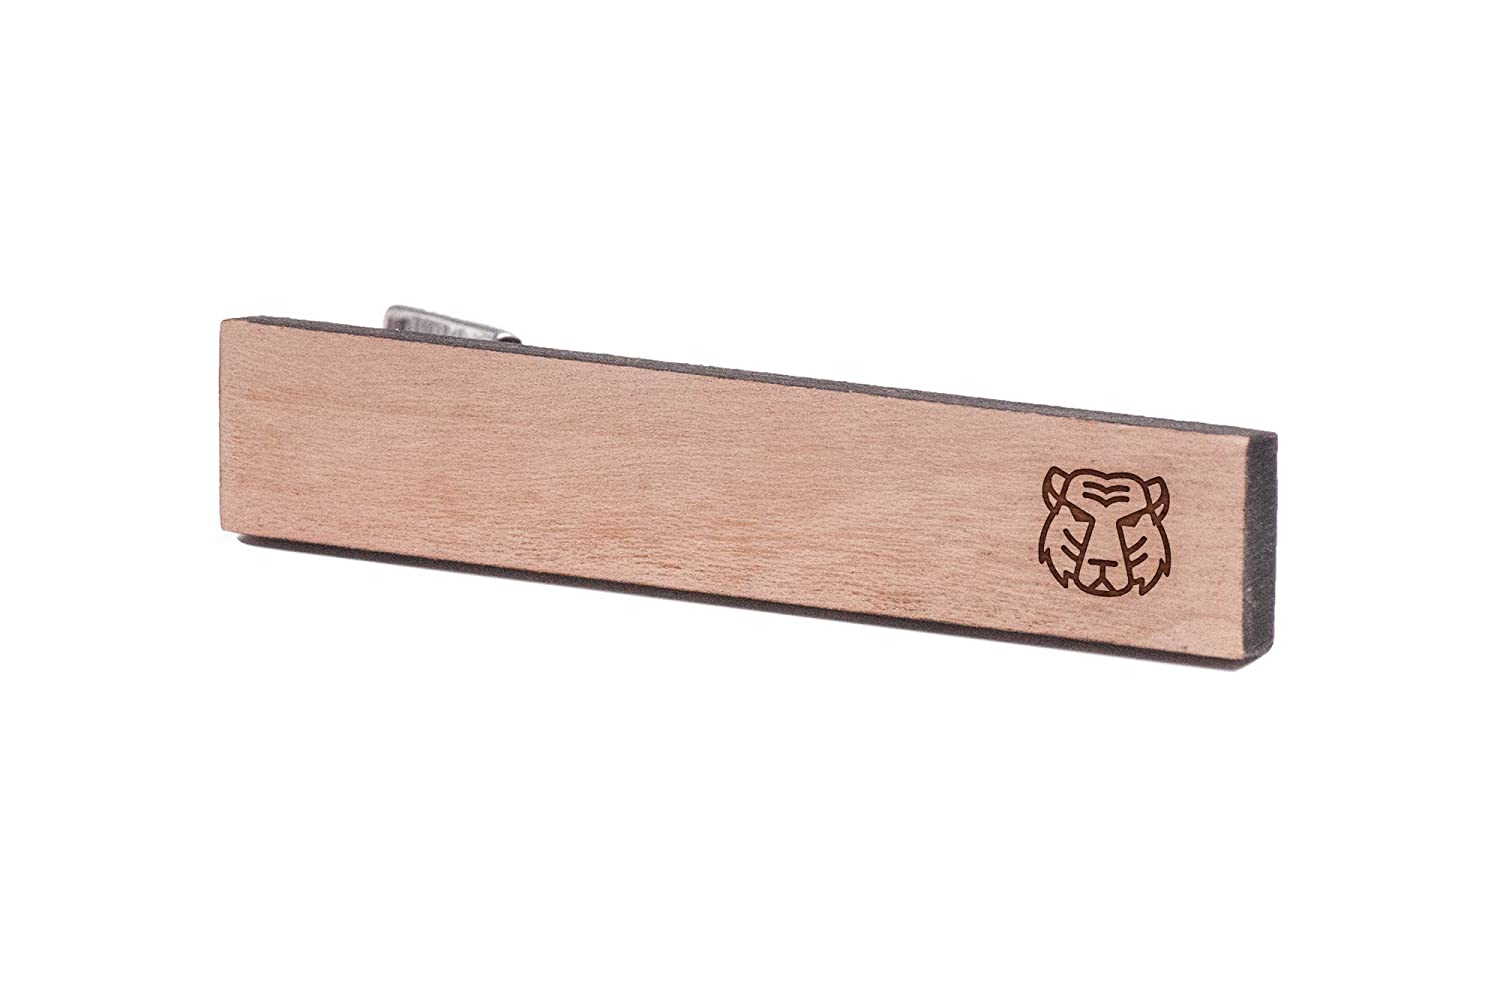 Cherry Wood Tie Bar Engraved in The USA Wooden Accessories Company Wooden Tie Clips with Laser Engraved Tiger Face Design